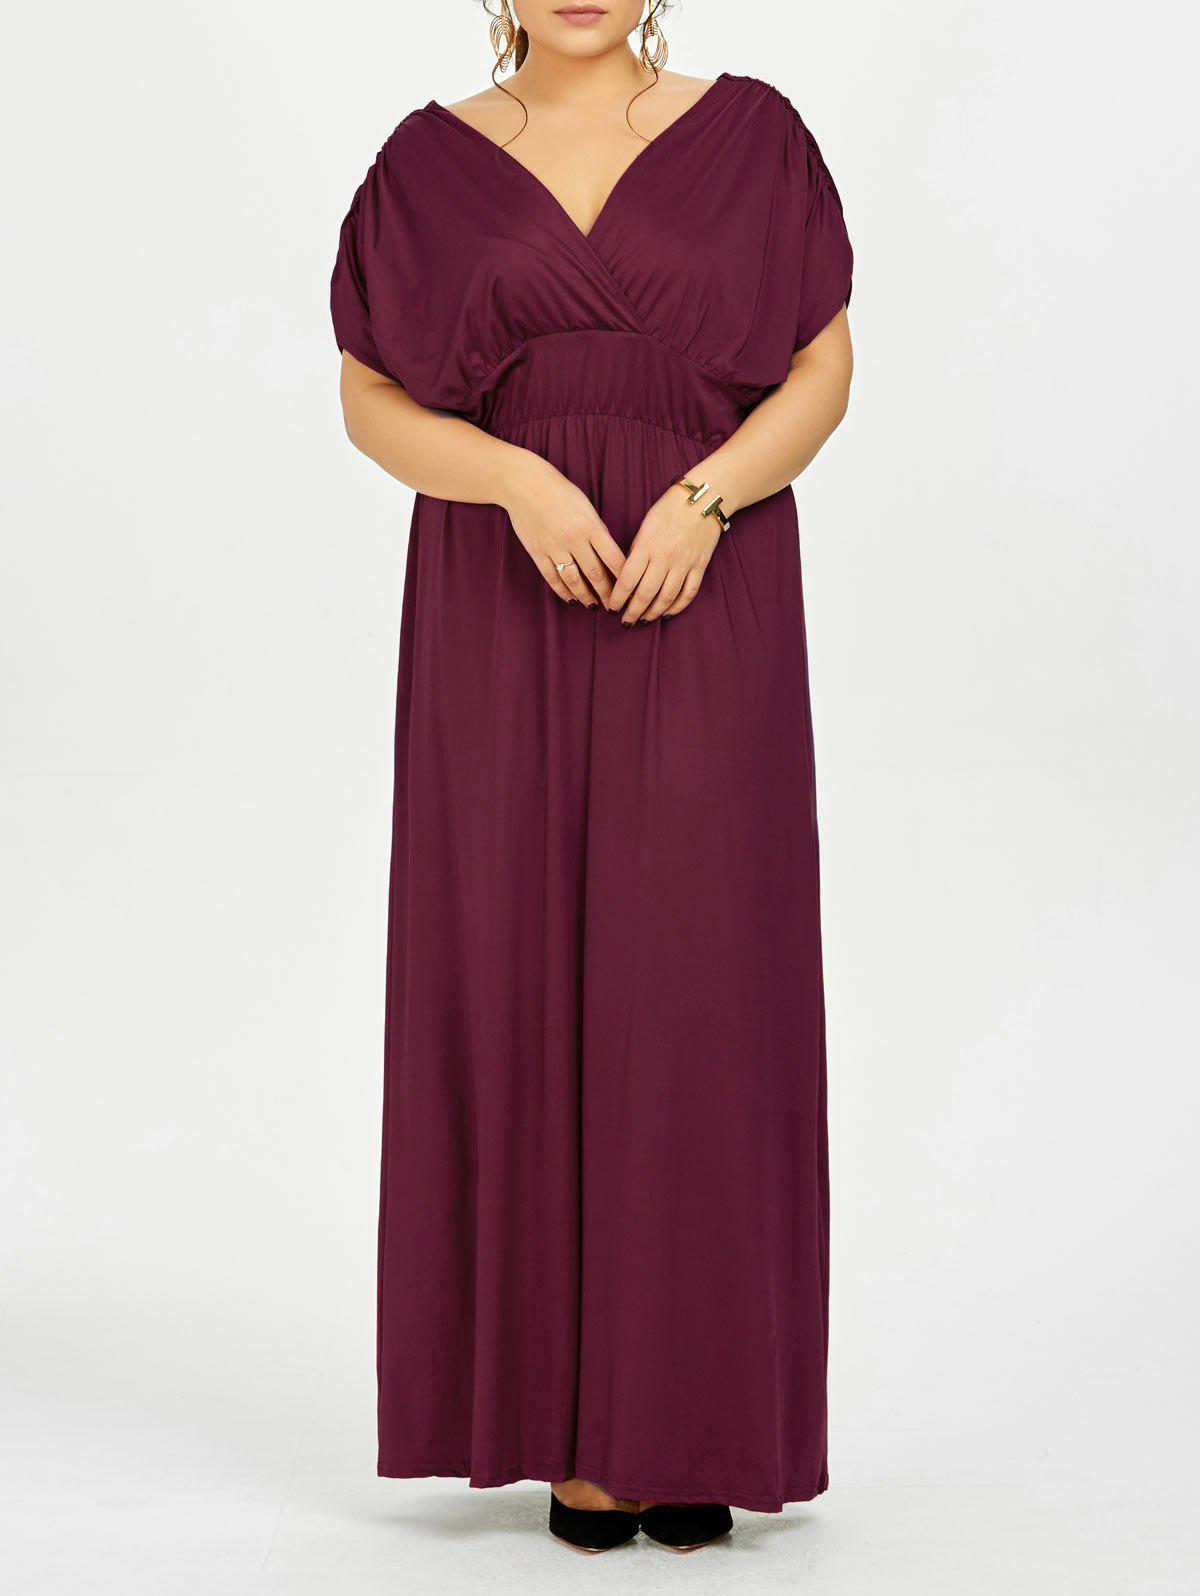 2018 Plus Size Empire Waist Long Formal Evening Dress Wine Red Xl In